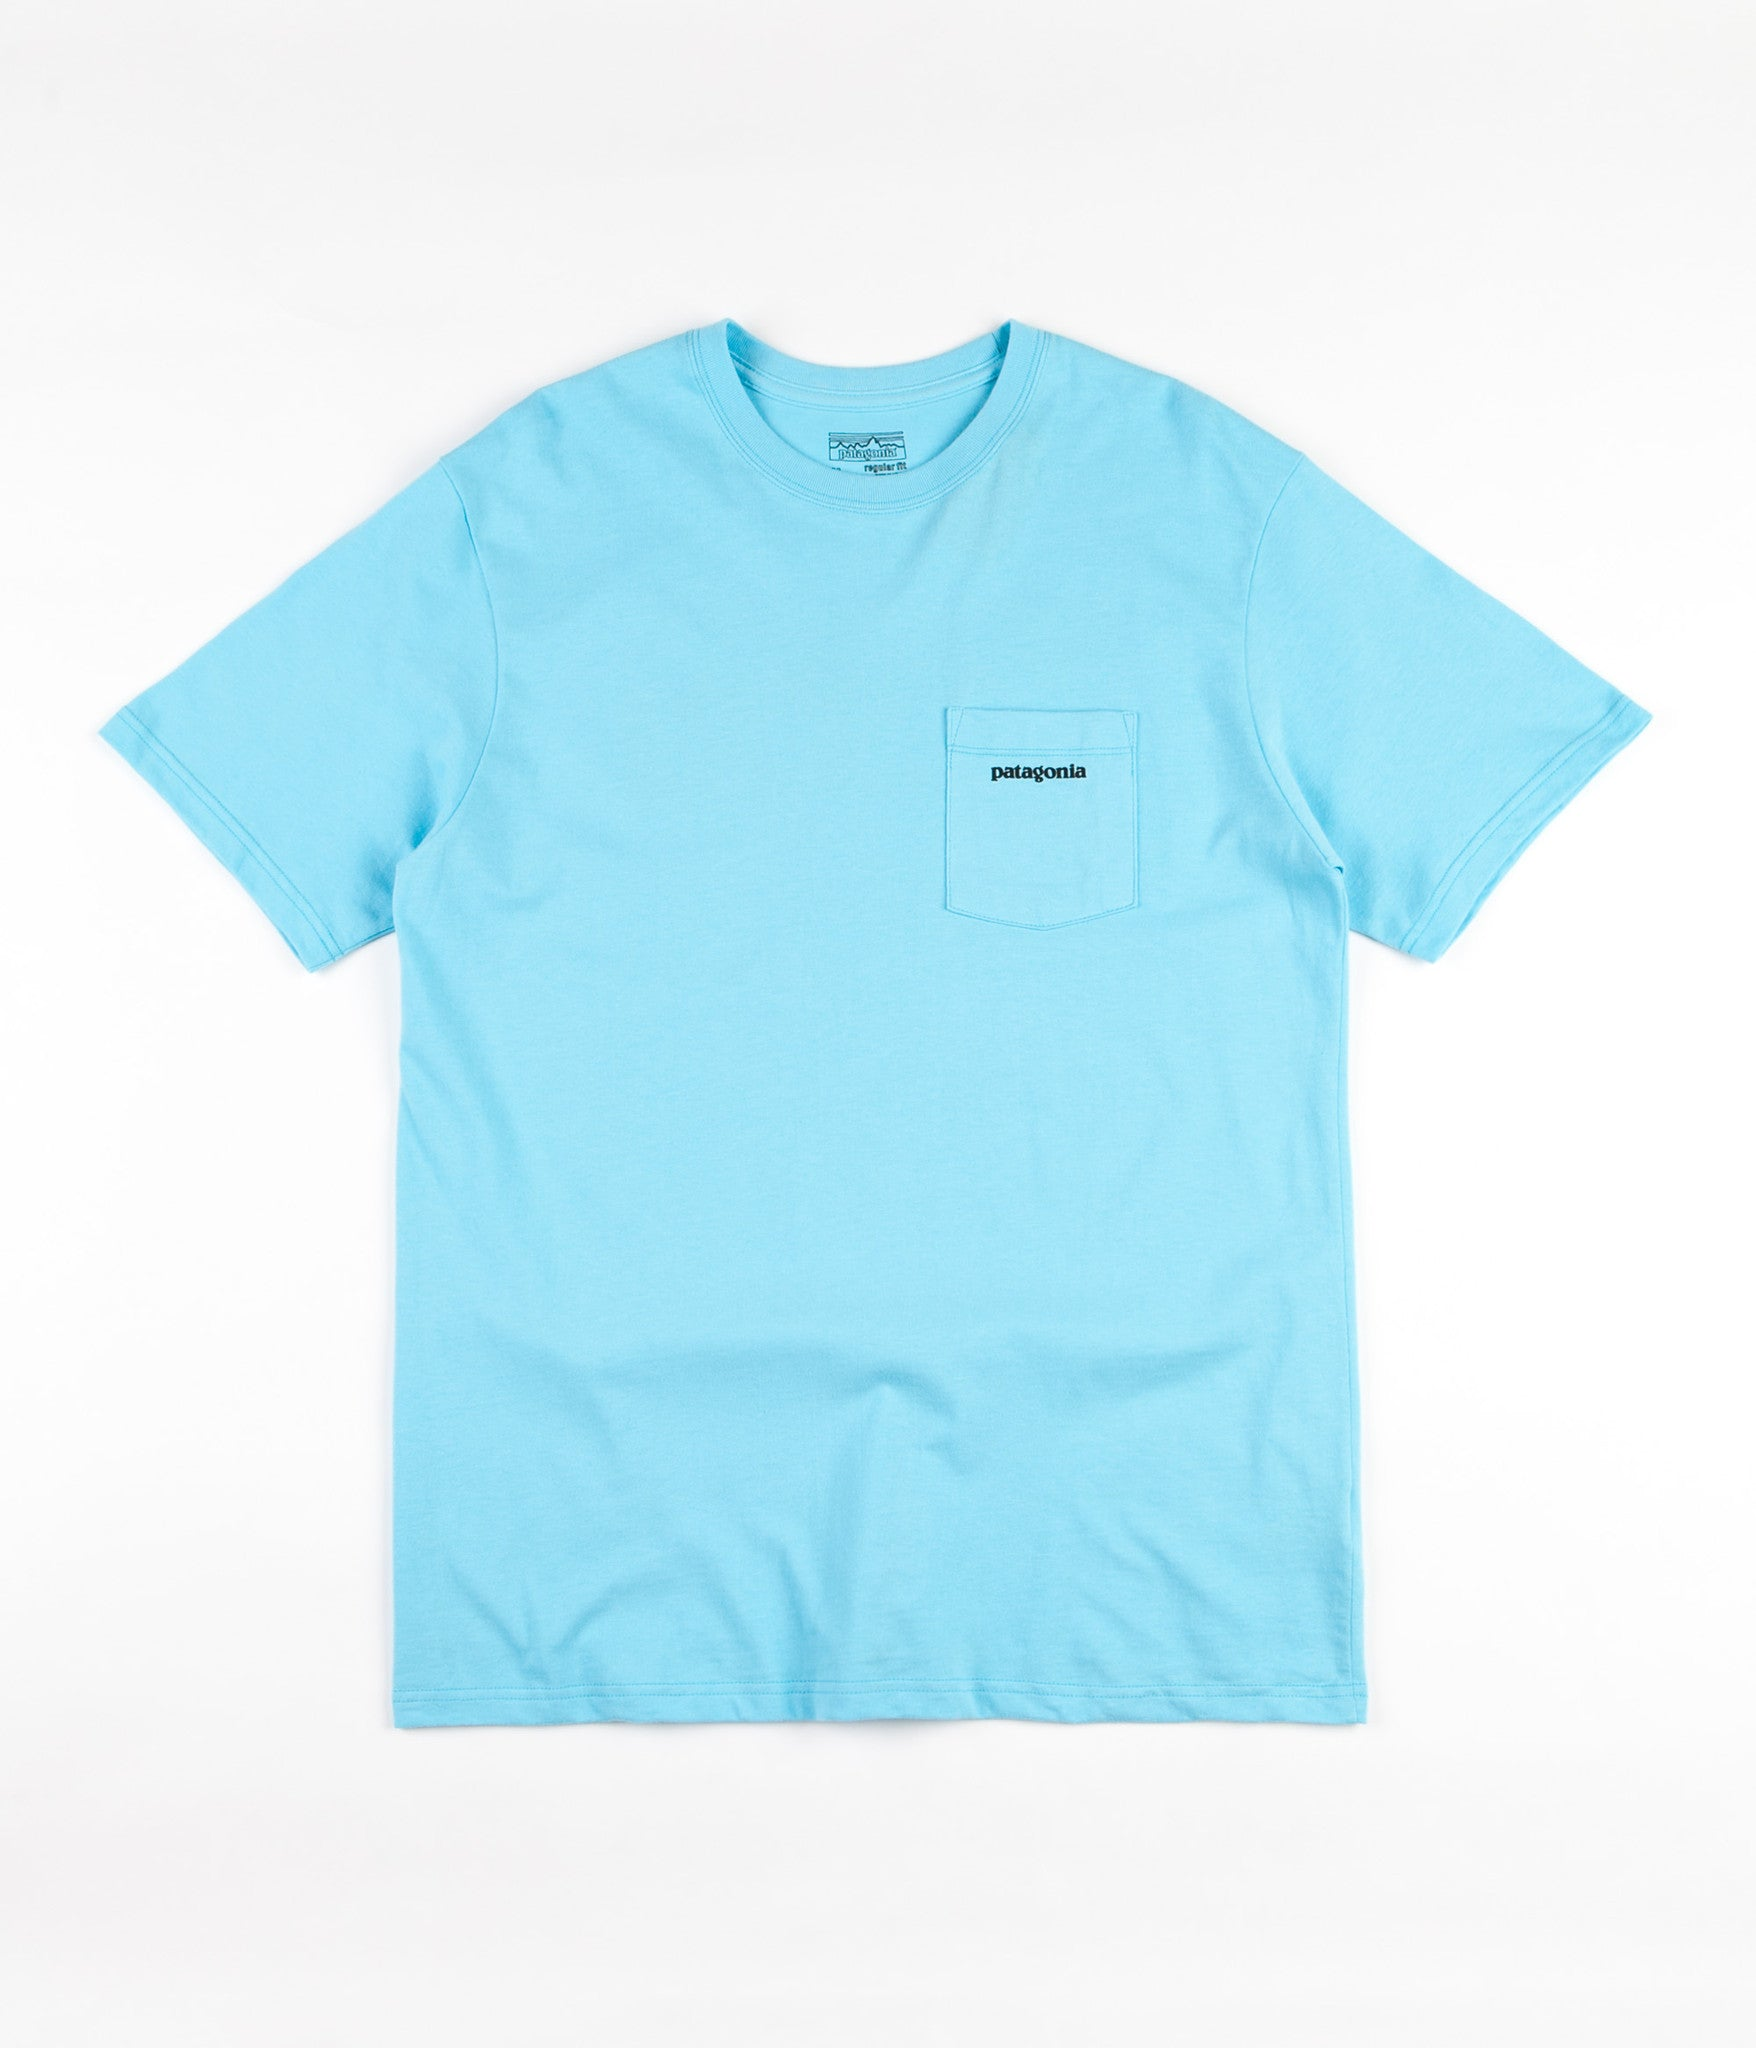 a17945a98 Pocket Tee Shirts With Logo